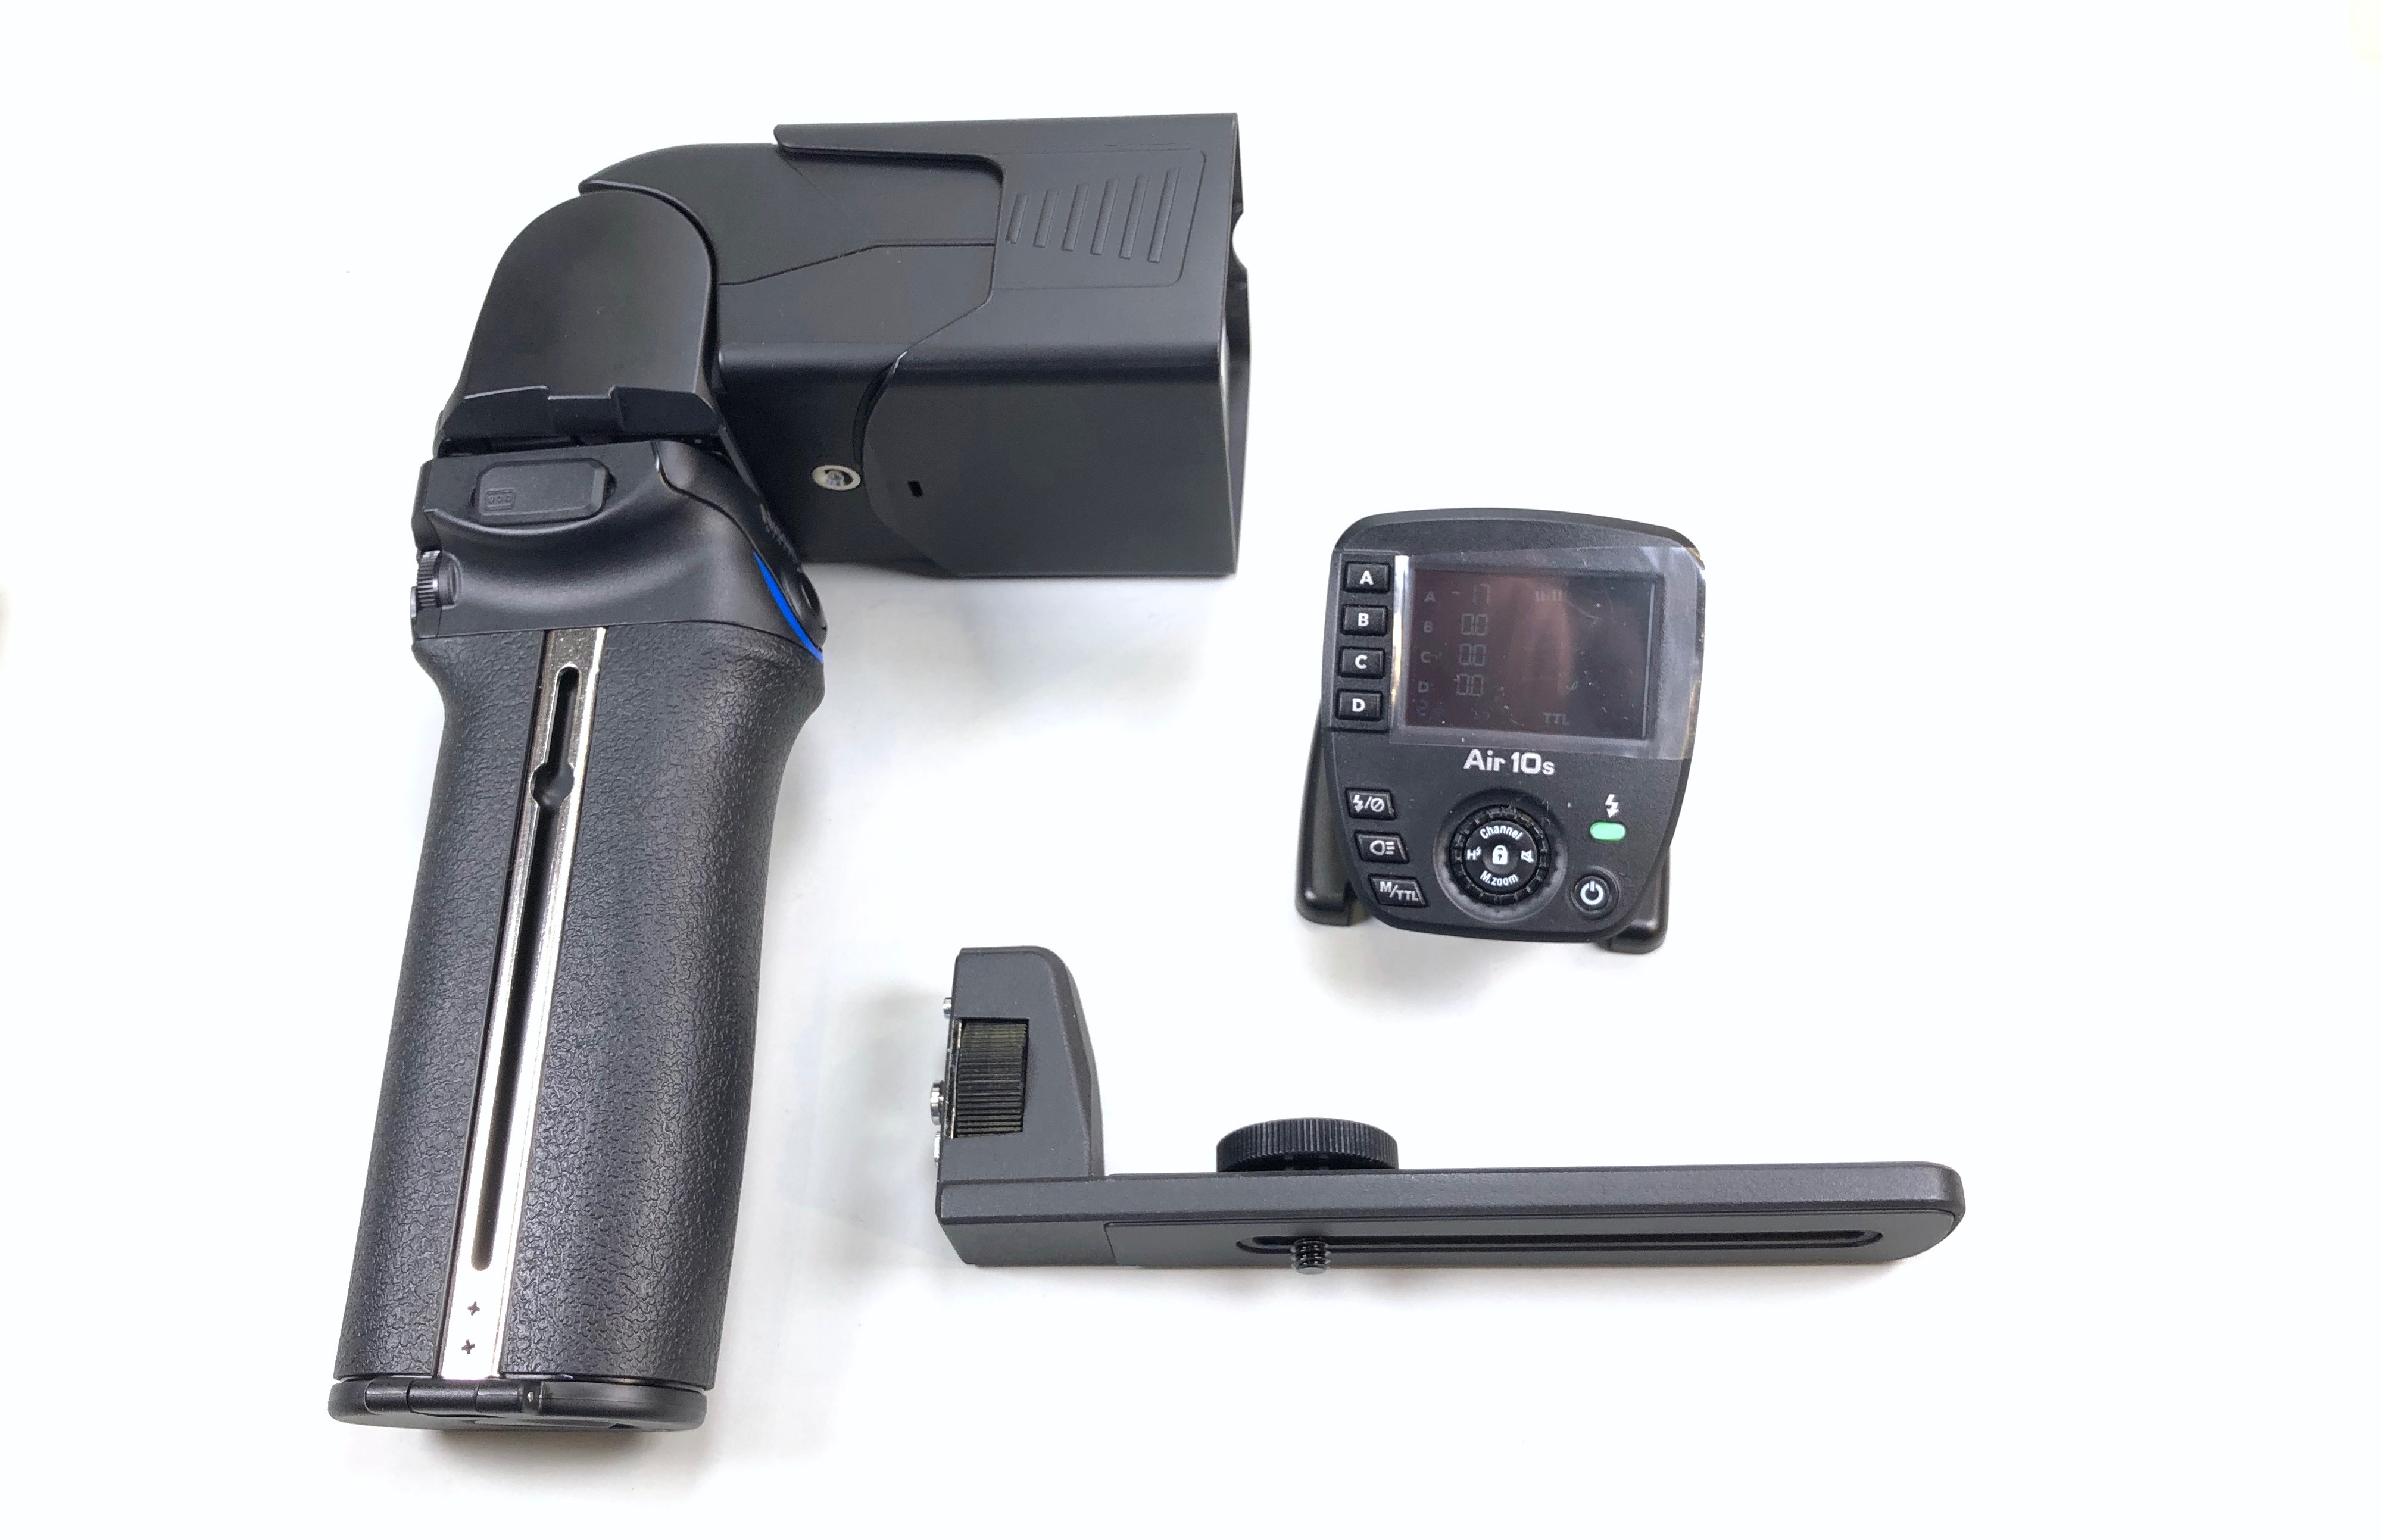 Nissin MG10: monster hammerhead flashgun has guide number of 80